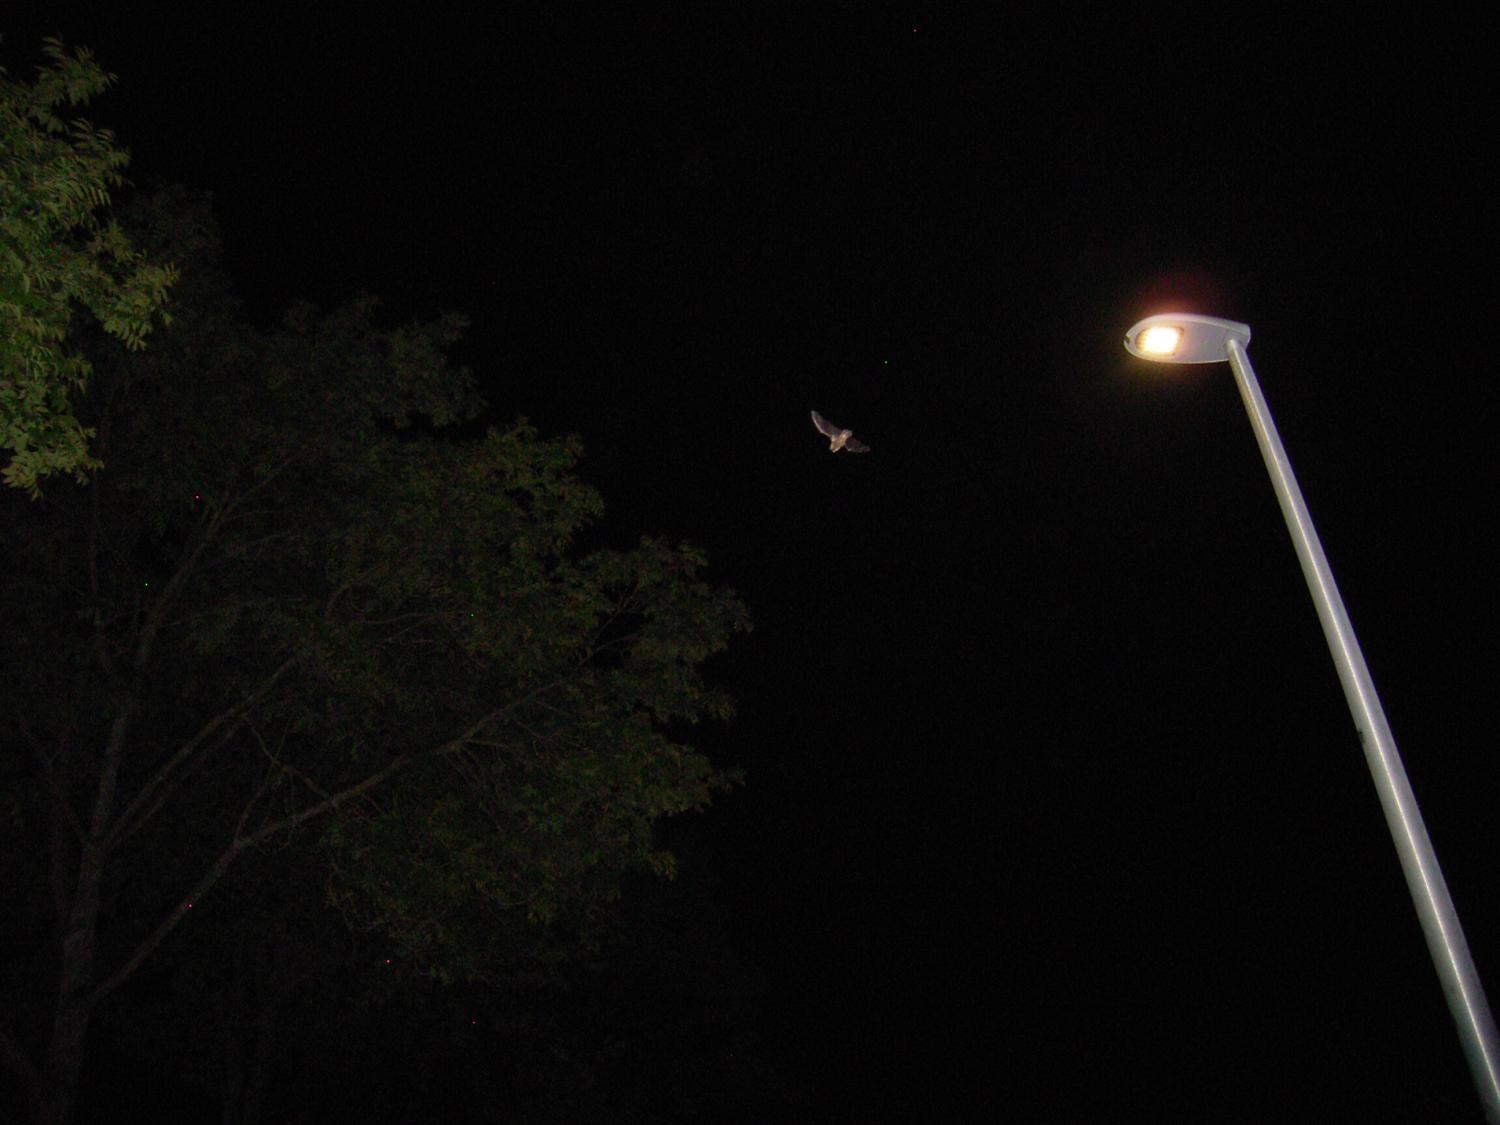 Led Lighting Influences The Activity Of Bats